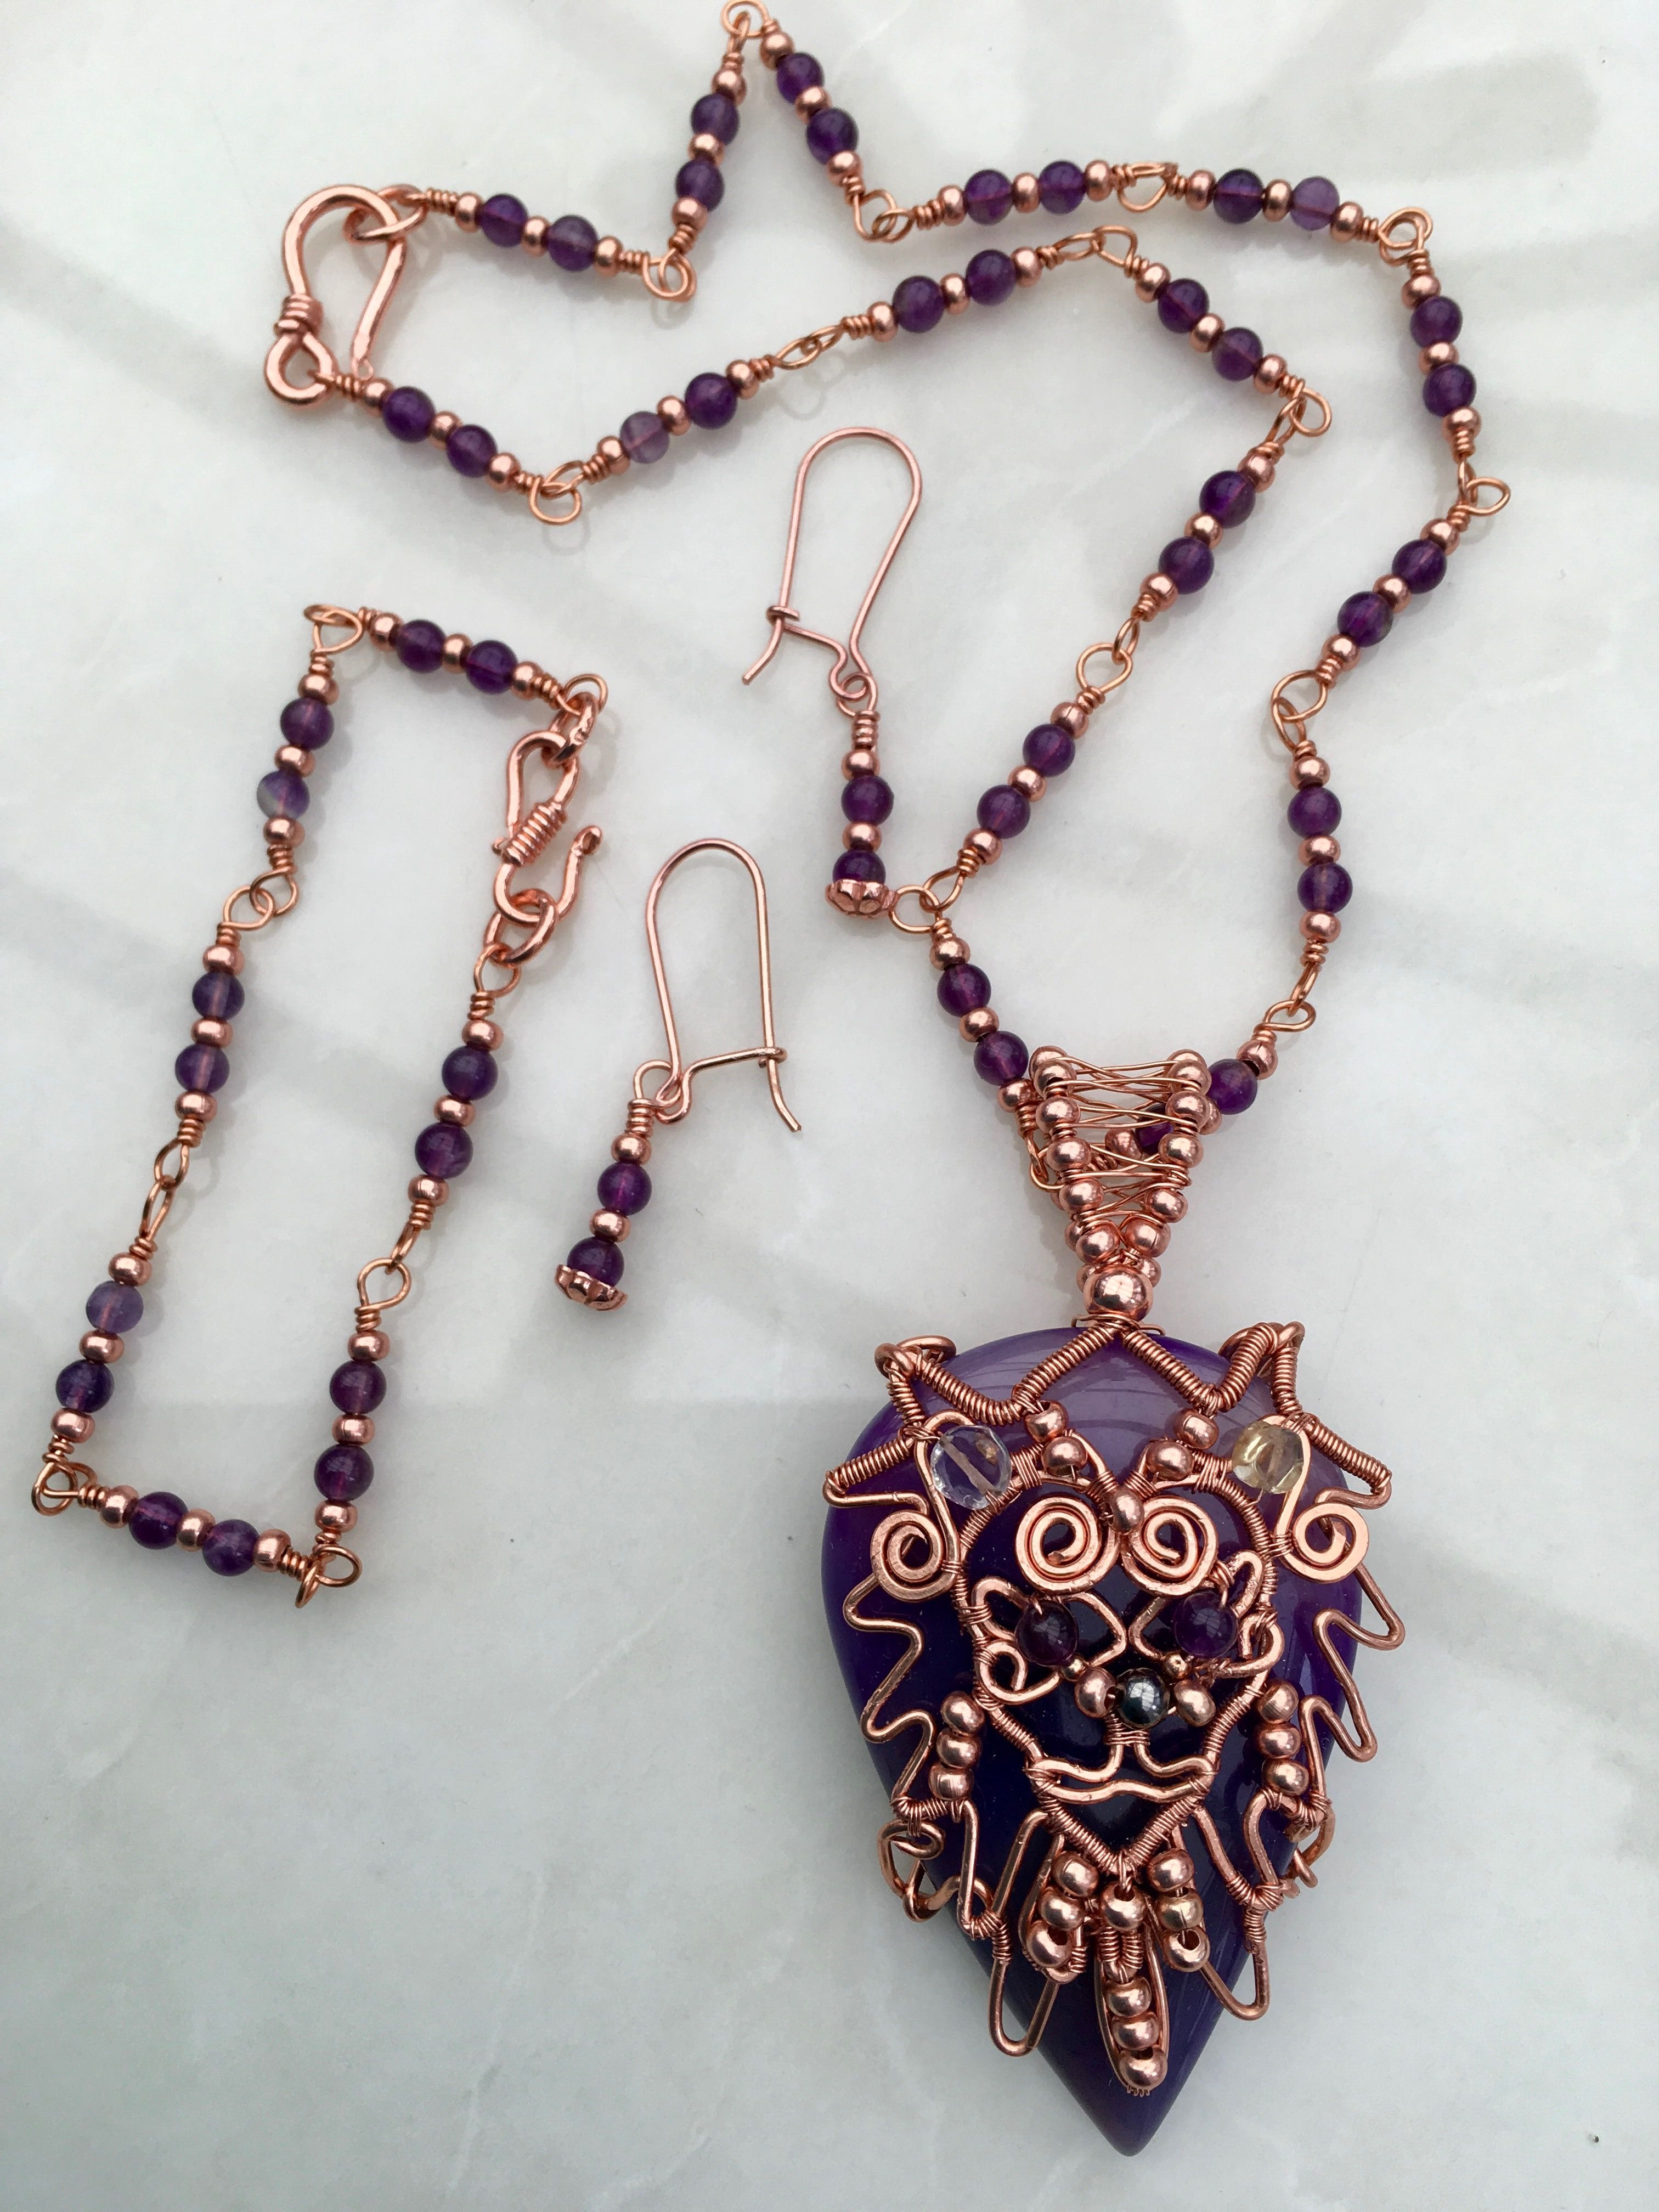 Wire wrapped lion purple onyx cabochon pendant, amethyst rosary ...